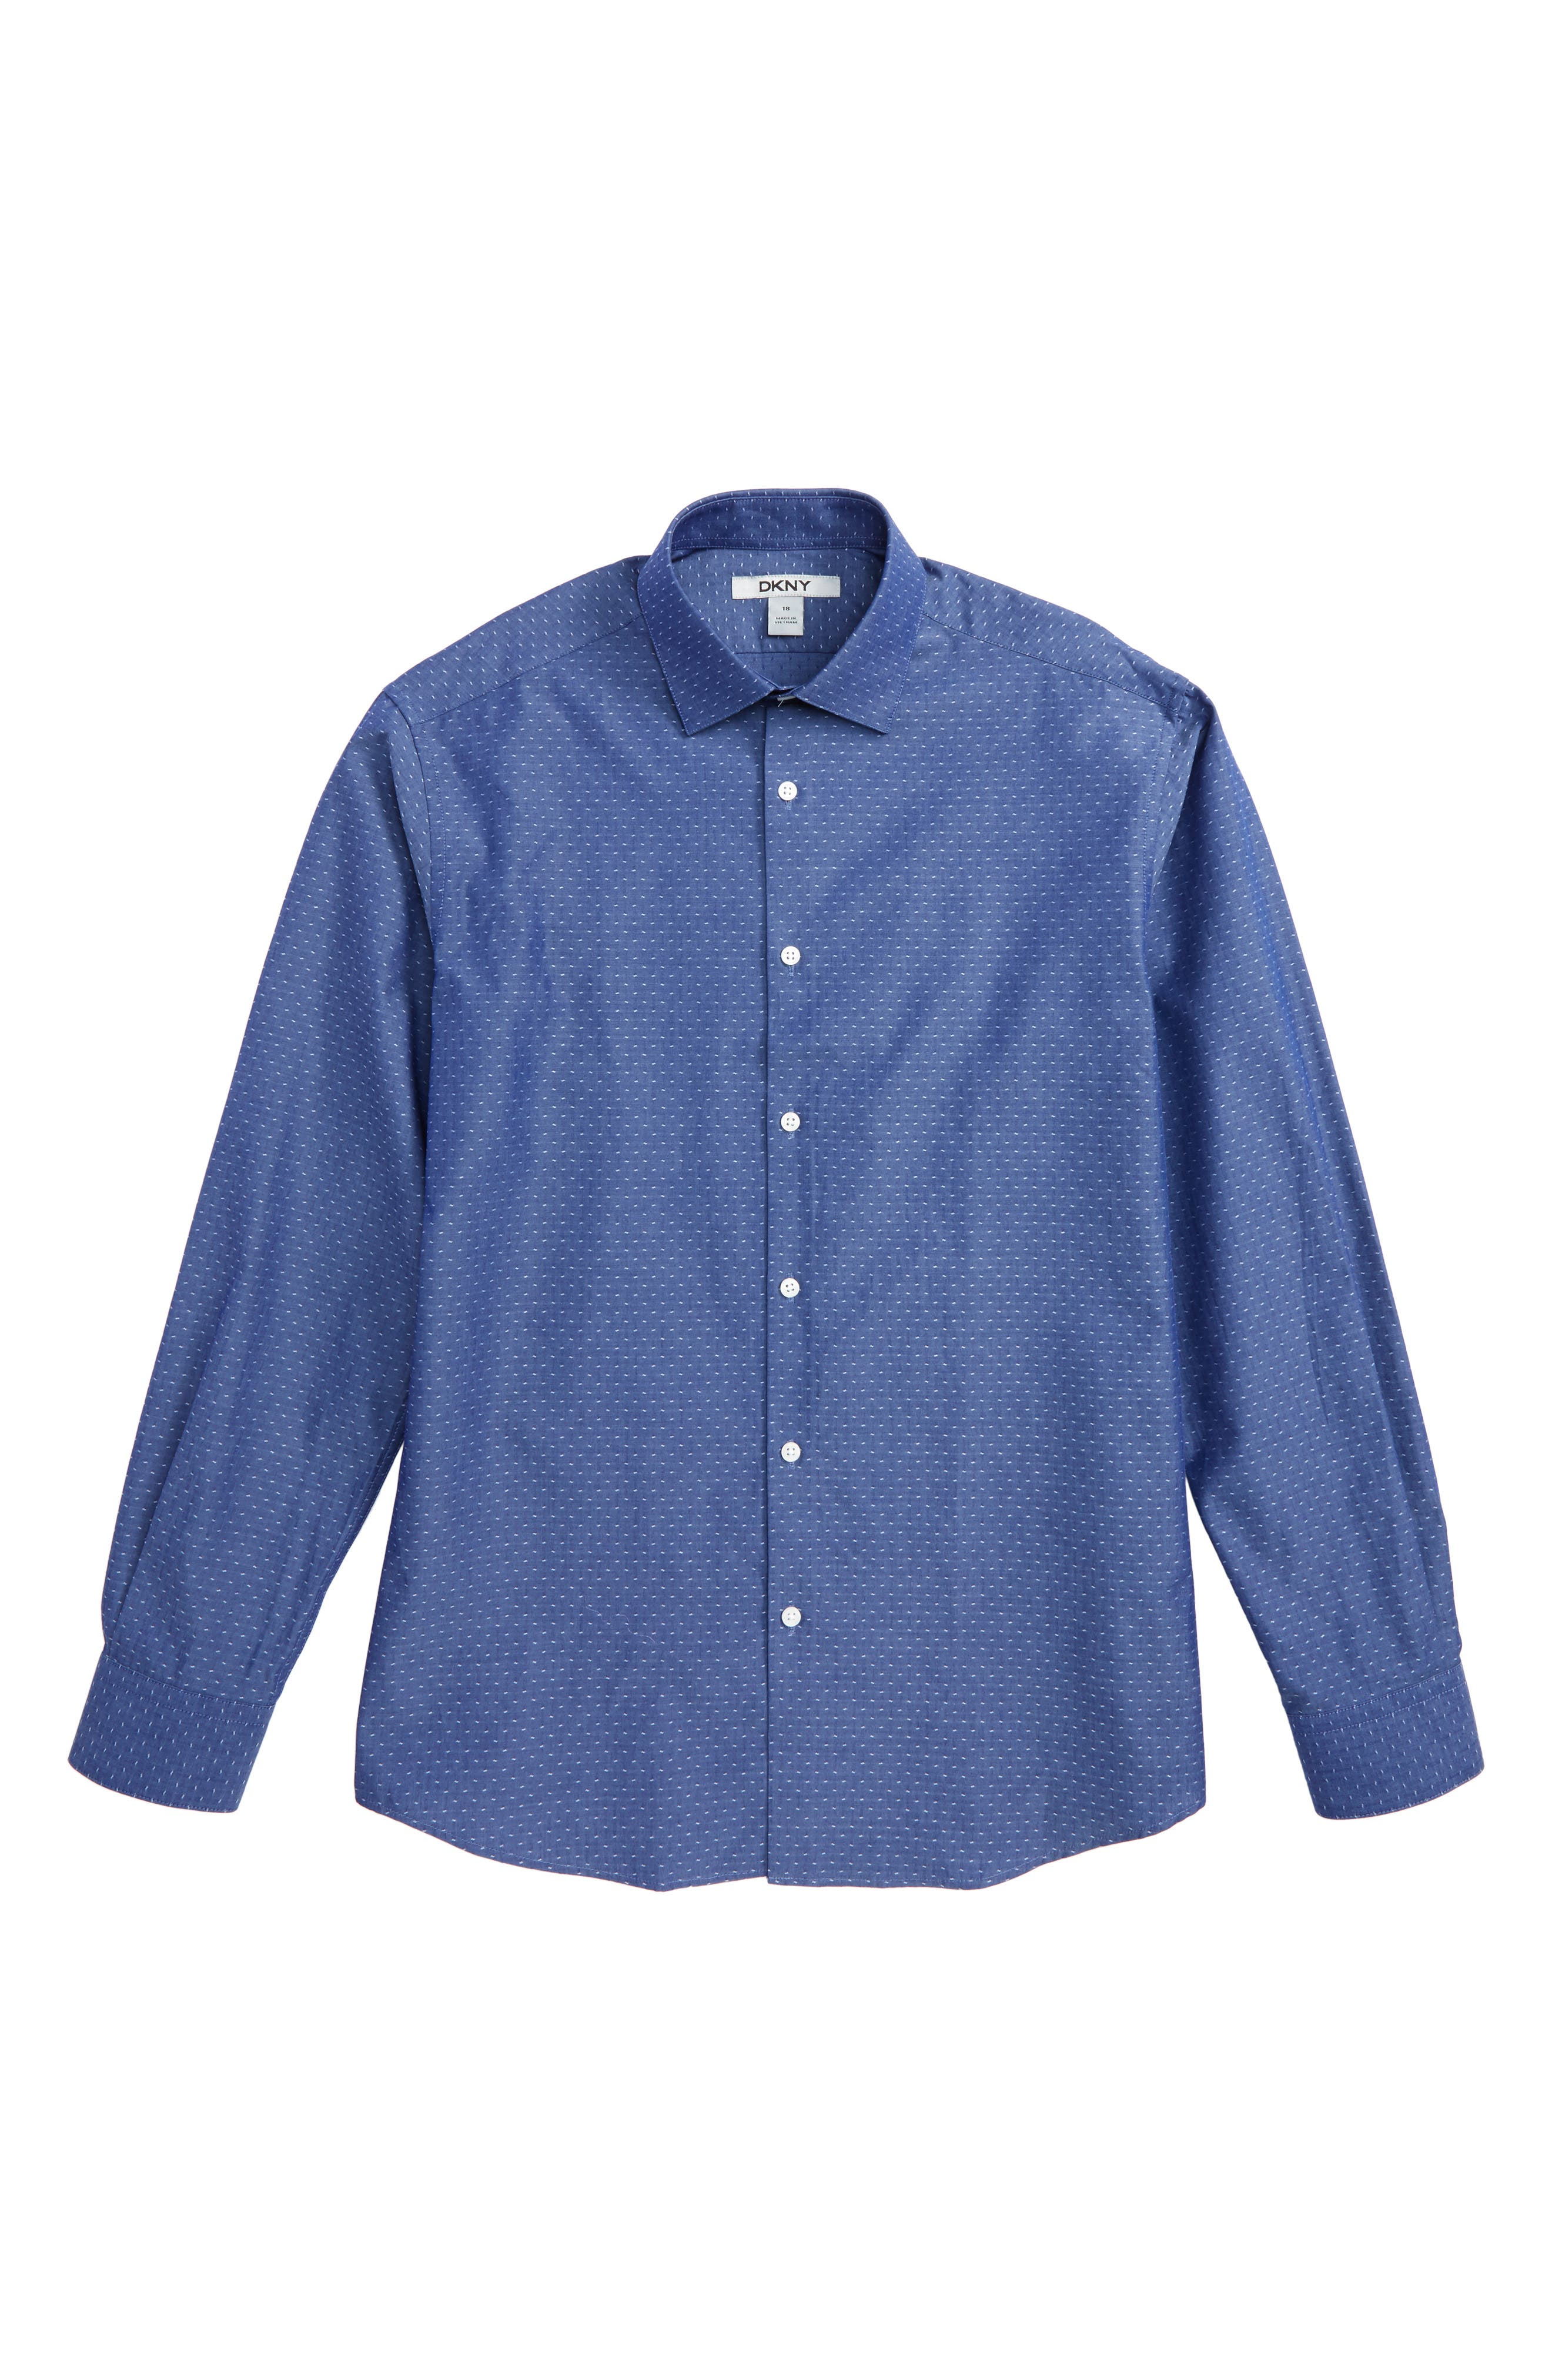 Dobby Dress Shirt,                         Main,                         color, 412